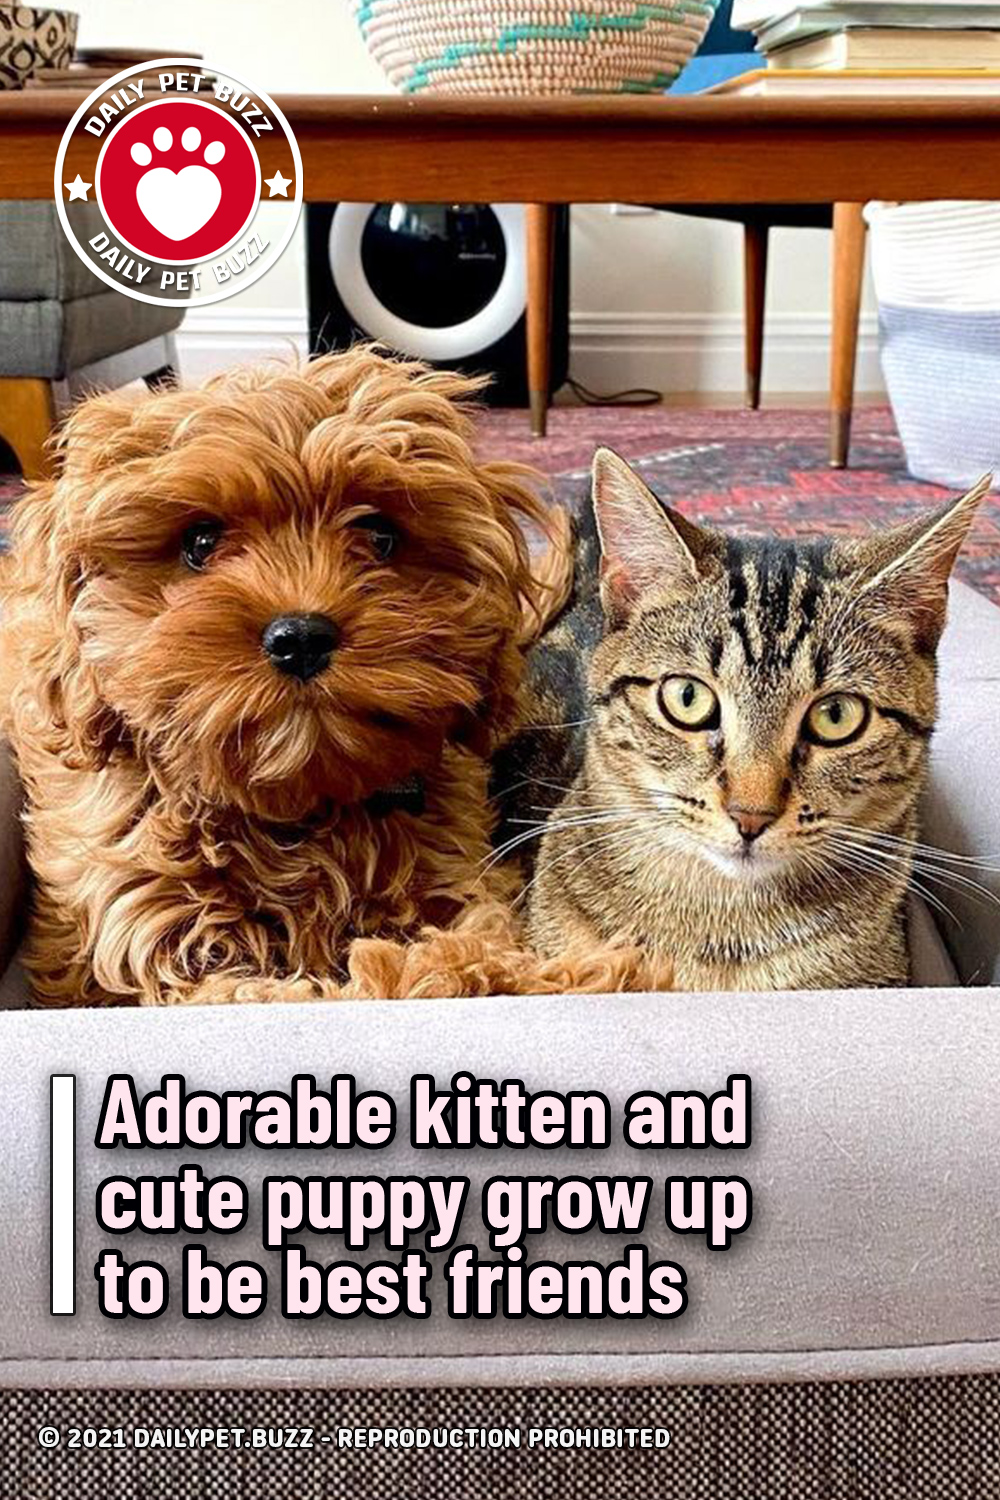 Adorable kitten and cute puppy grow up to be best friends